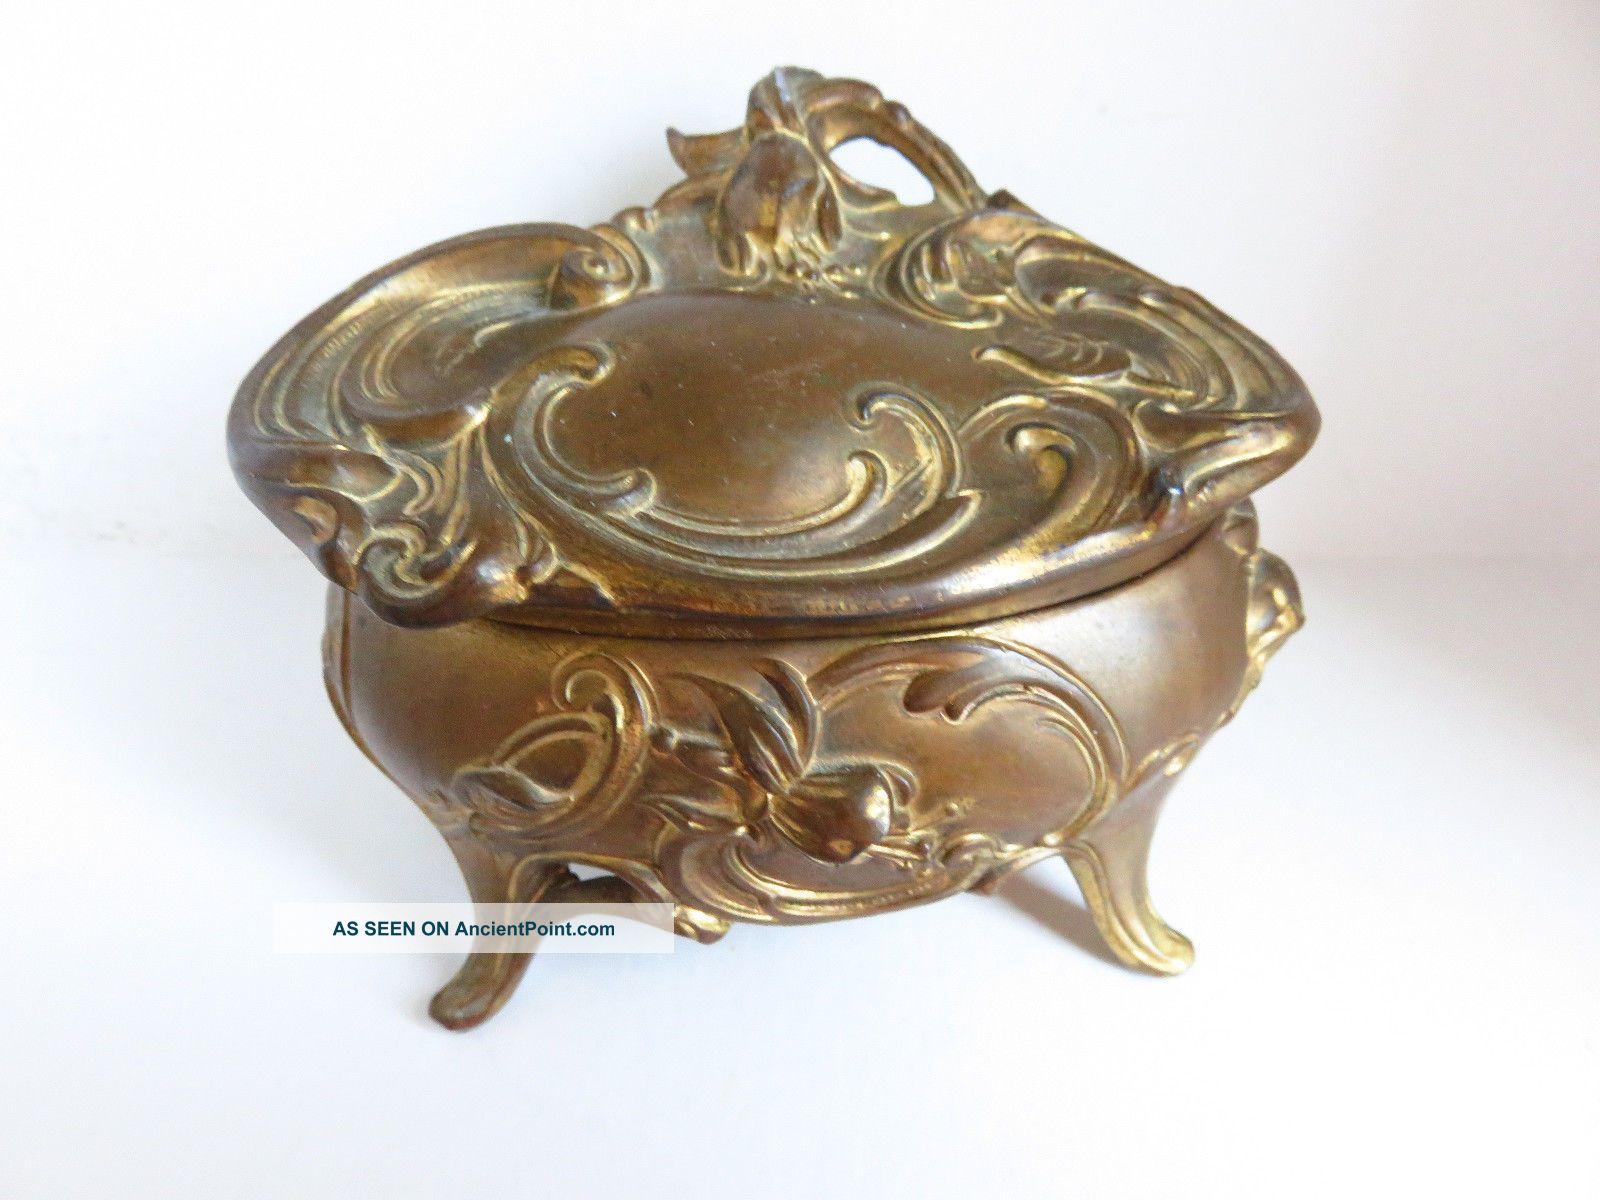 Vintage Wb Mfg Co.  Ornate Oval Metal Jewelry Trinket Casket Box Art Nouveau photo